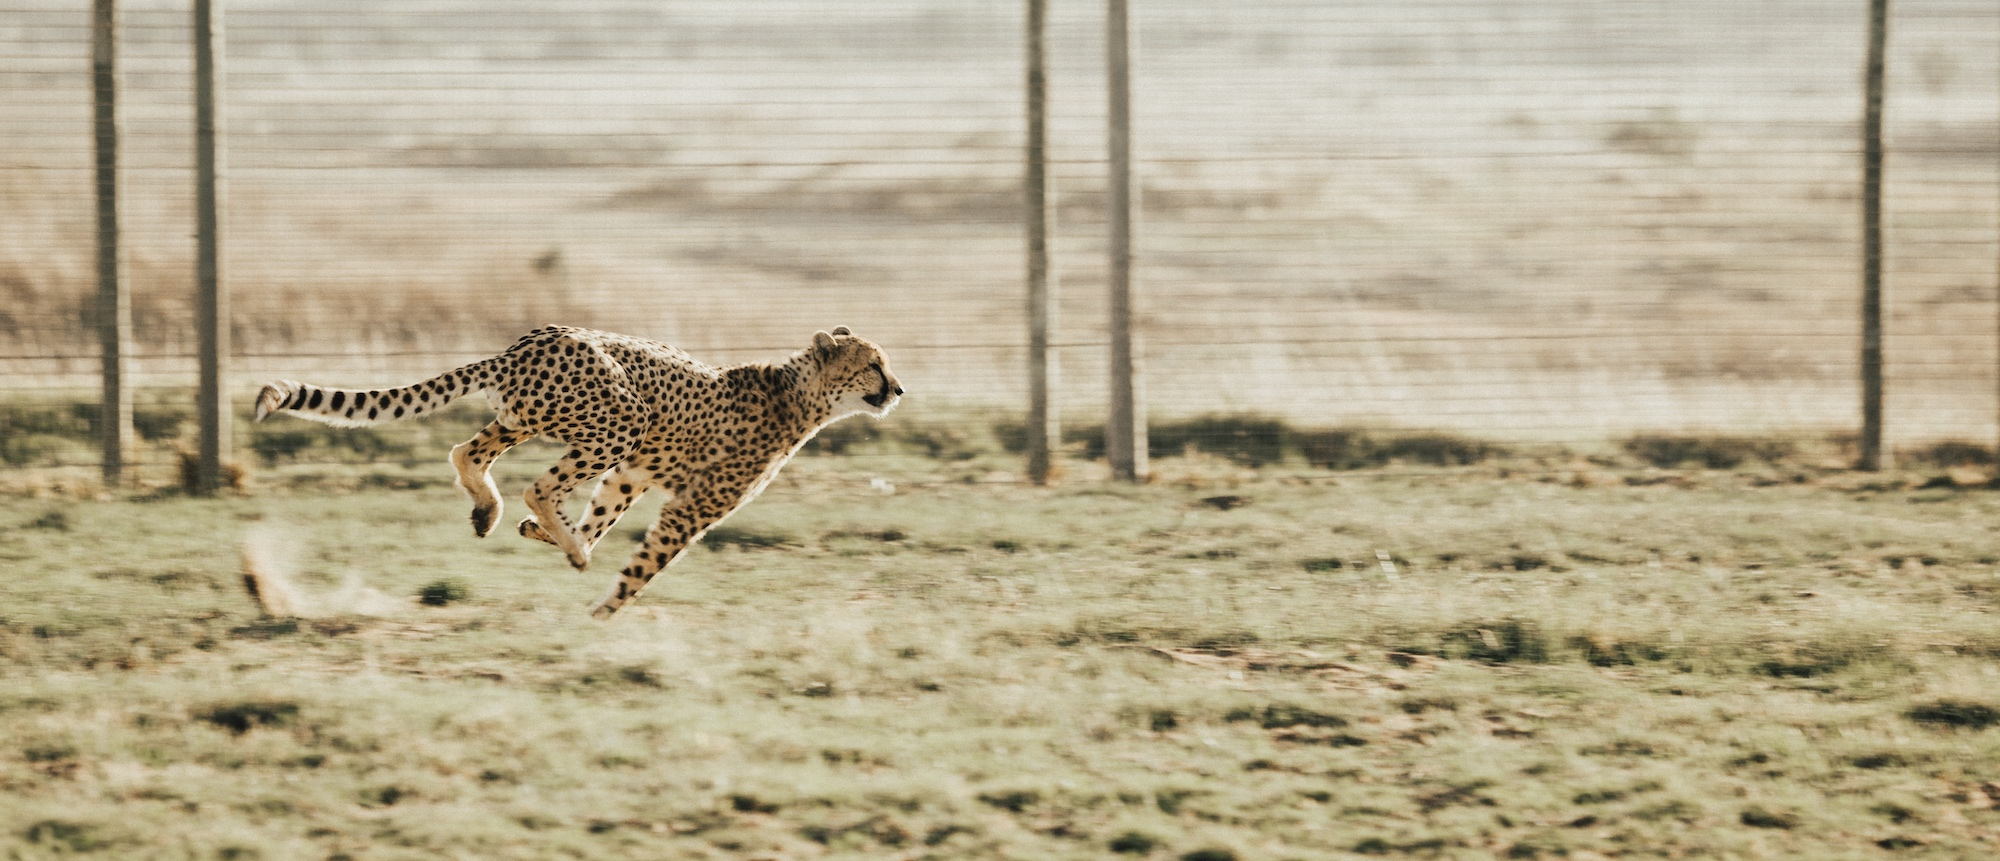 running cheetah across field